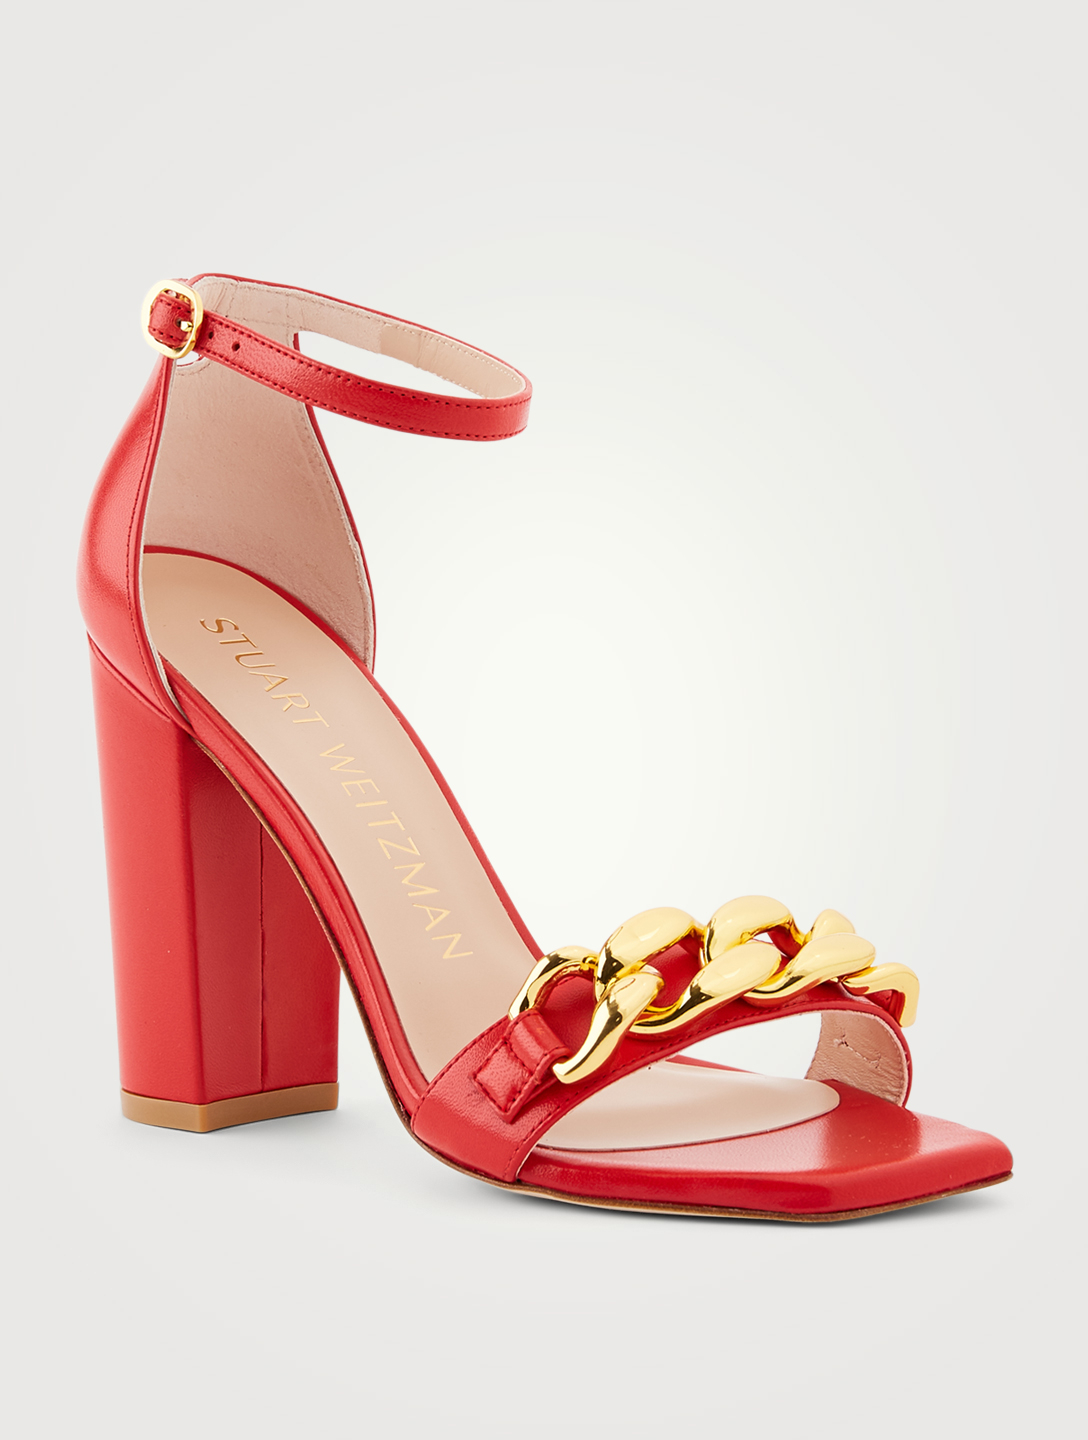 STUART WEITZMAN Amelina Block 100 Chain Leather Heeled Sandals Women's Red